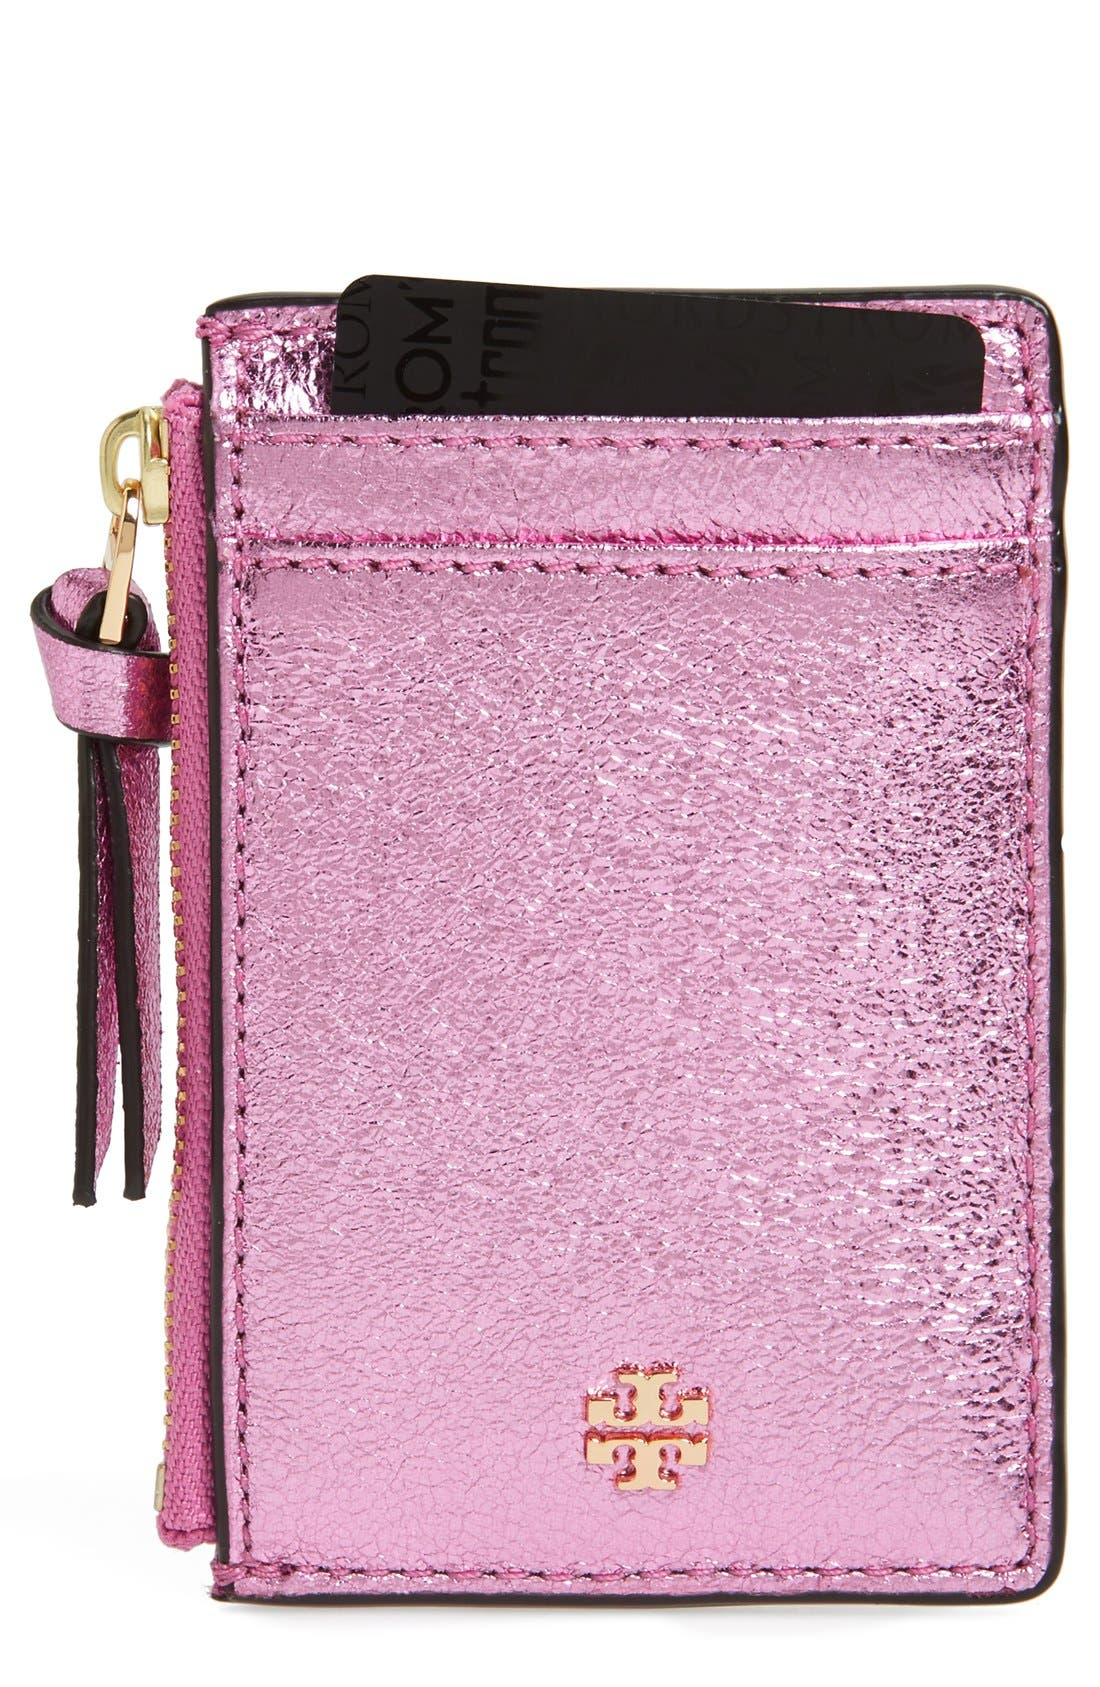 Alternate Image 1 Selected - Tory Burch Crinkle Metallic Leather Card Case